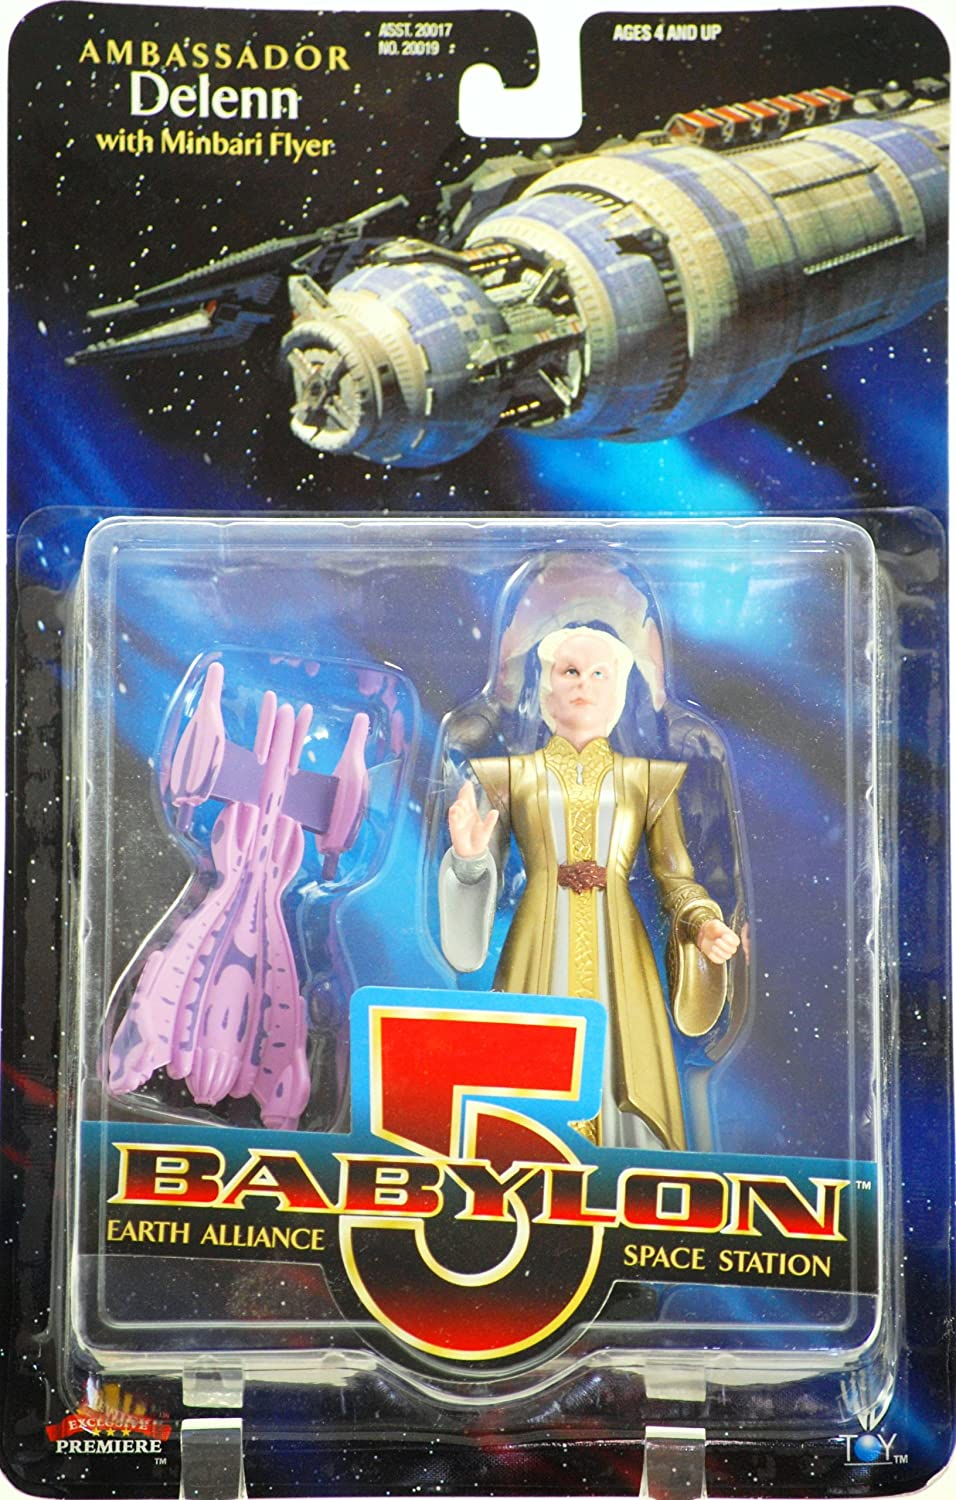 Bone Head Babylon 5 Ambassador Delenn 6in Figure w// Minbari Flyer Exclusive Premier 99-W057-N3T7